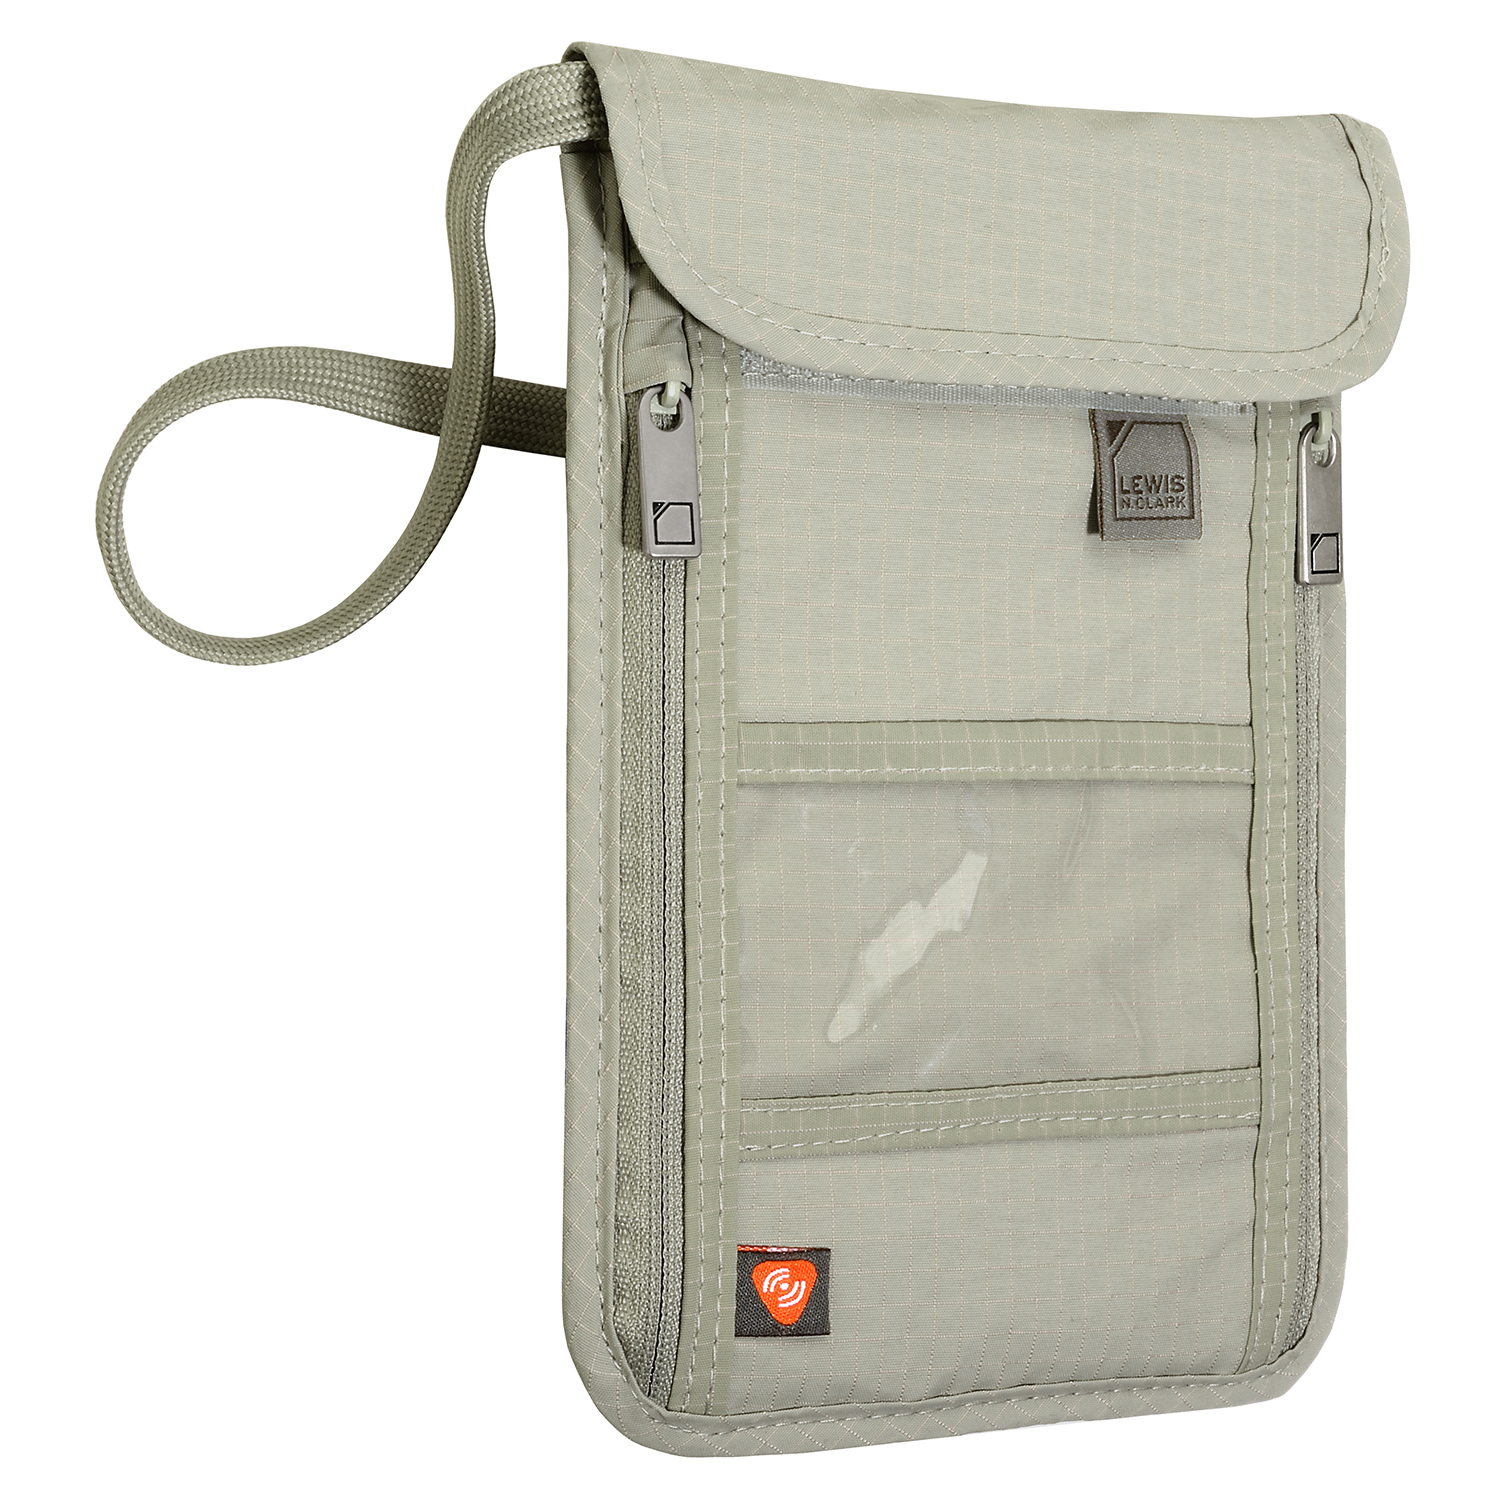 Army gray travel pouch with cord for wearing around neck with zipper pockets and a clear panel on front for ID Product Photography